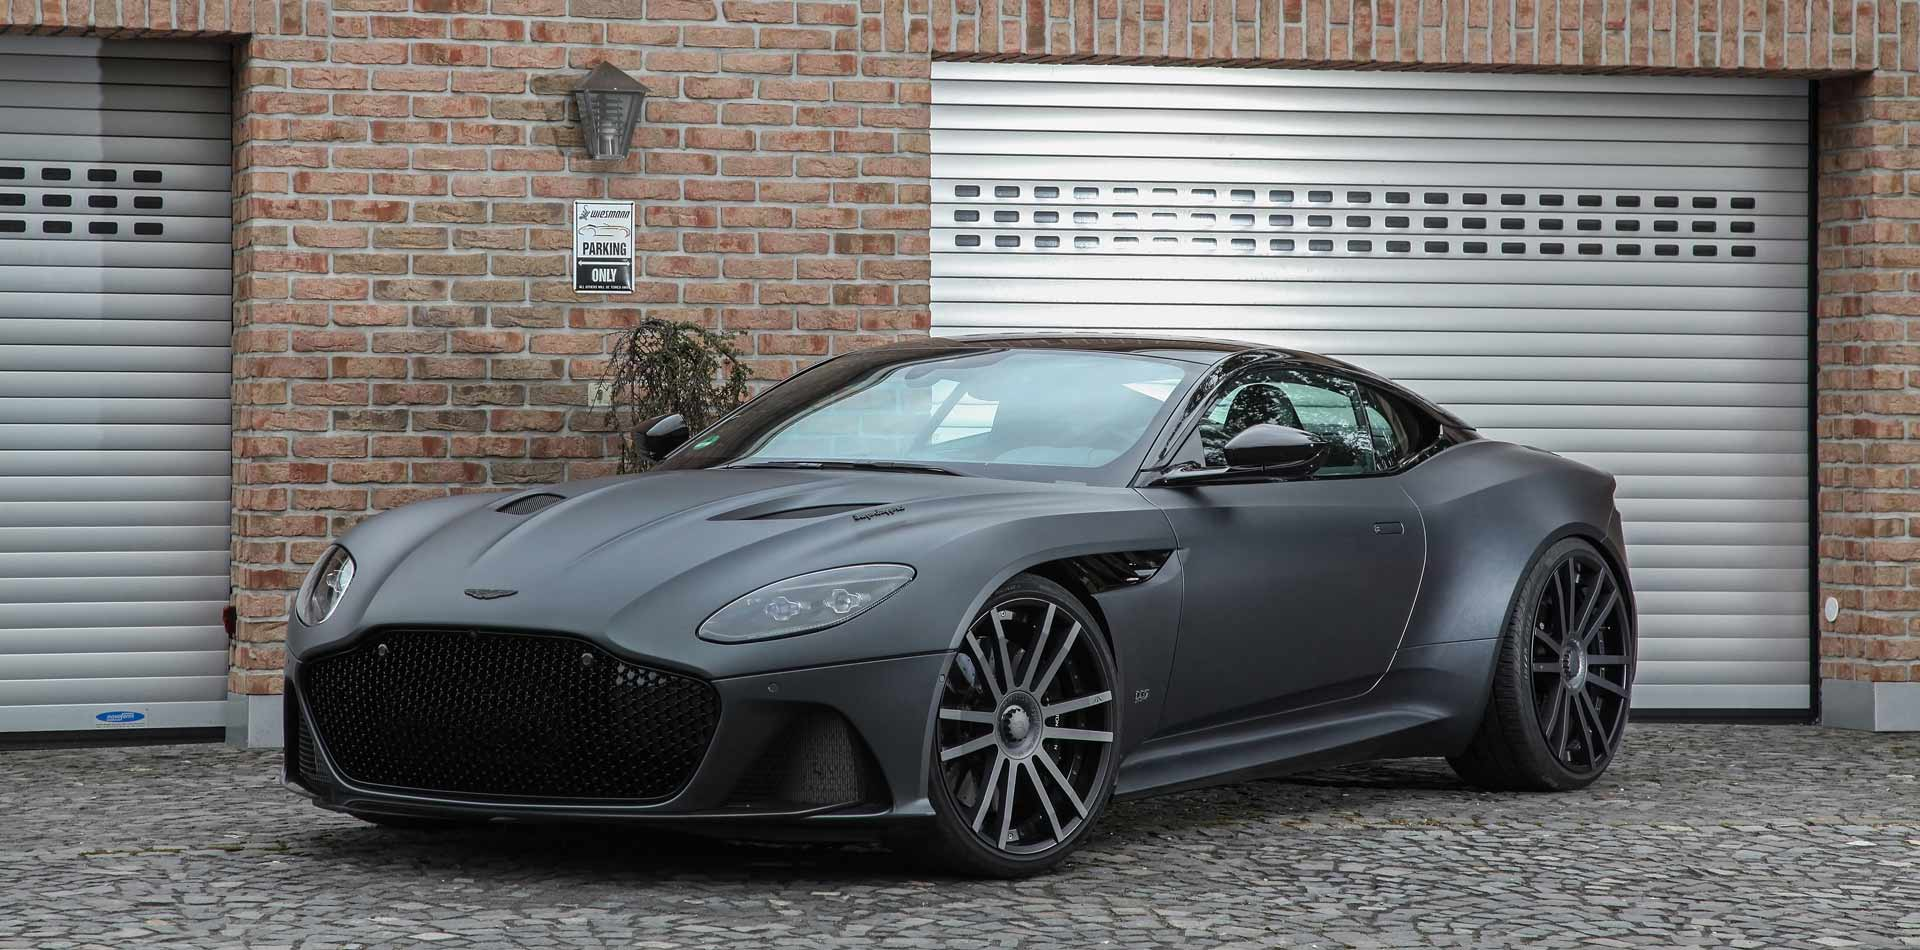 Aston-Martin-DBS-Superleggera-by-Wheelsandmore-4